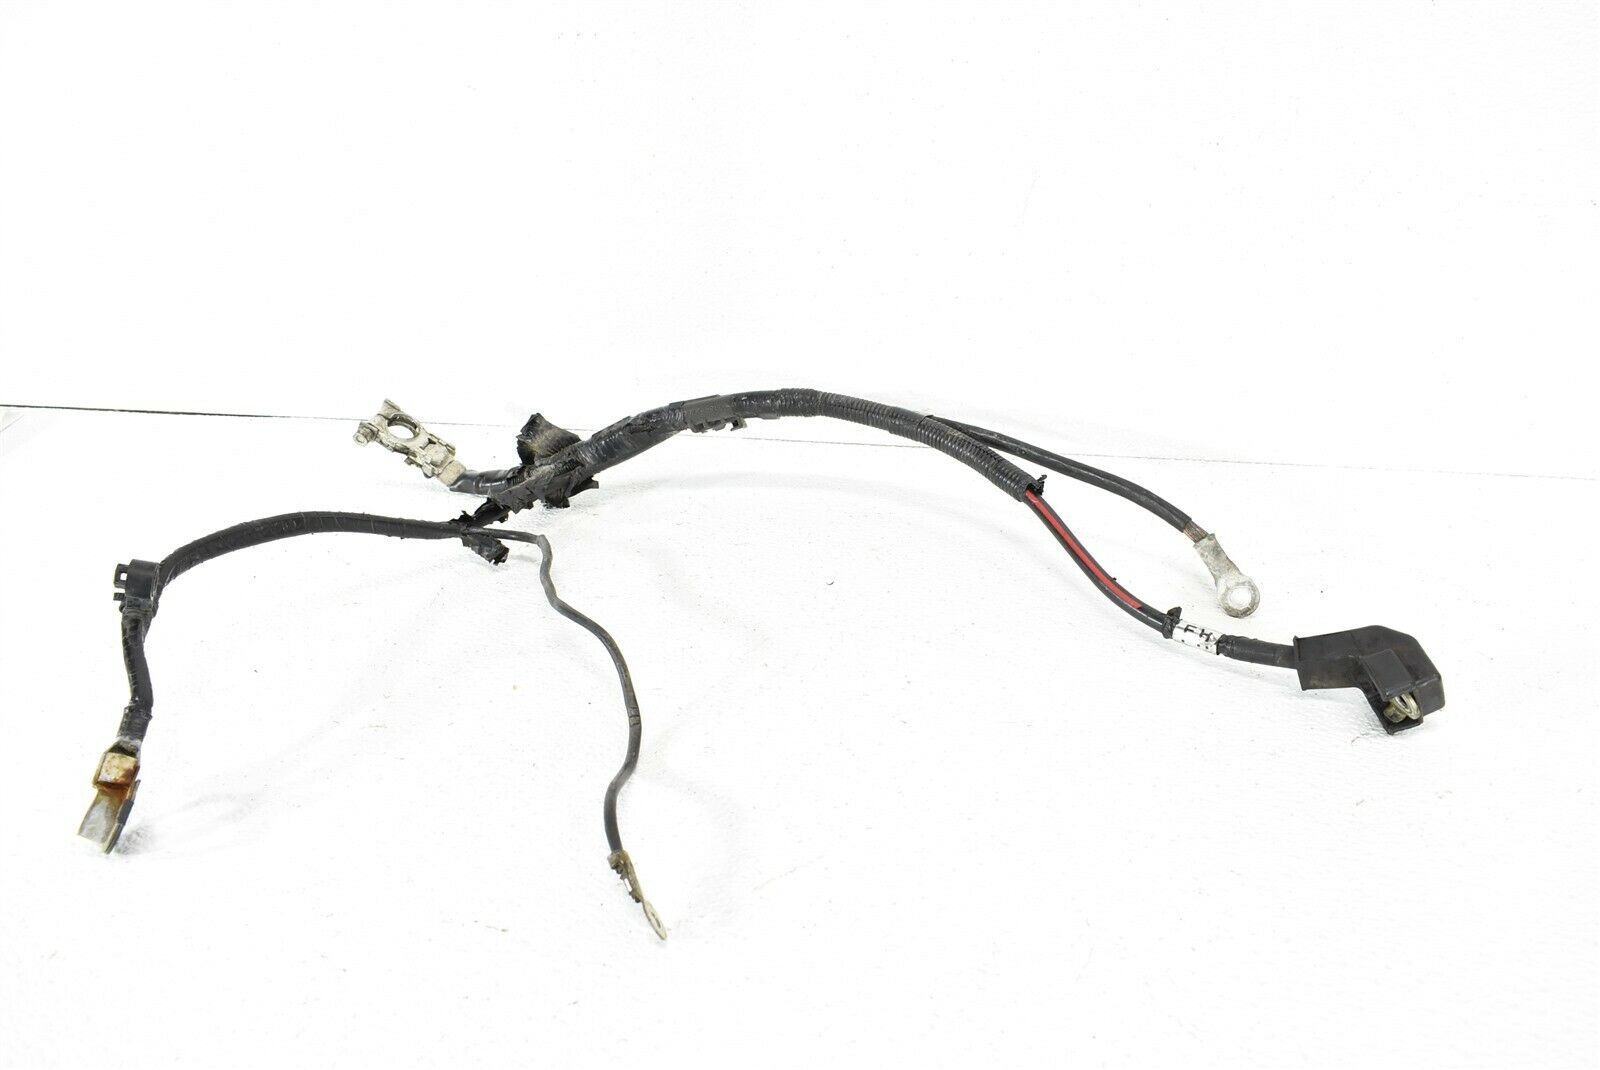 Subaru Forester Xt Starter Harness Wiring Wires